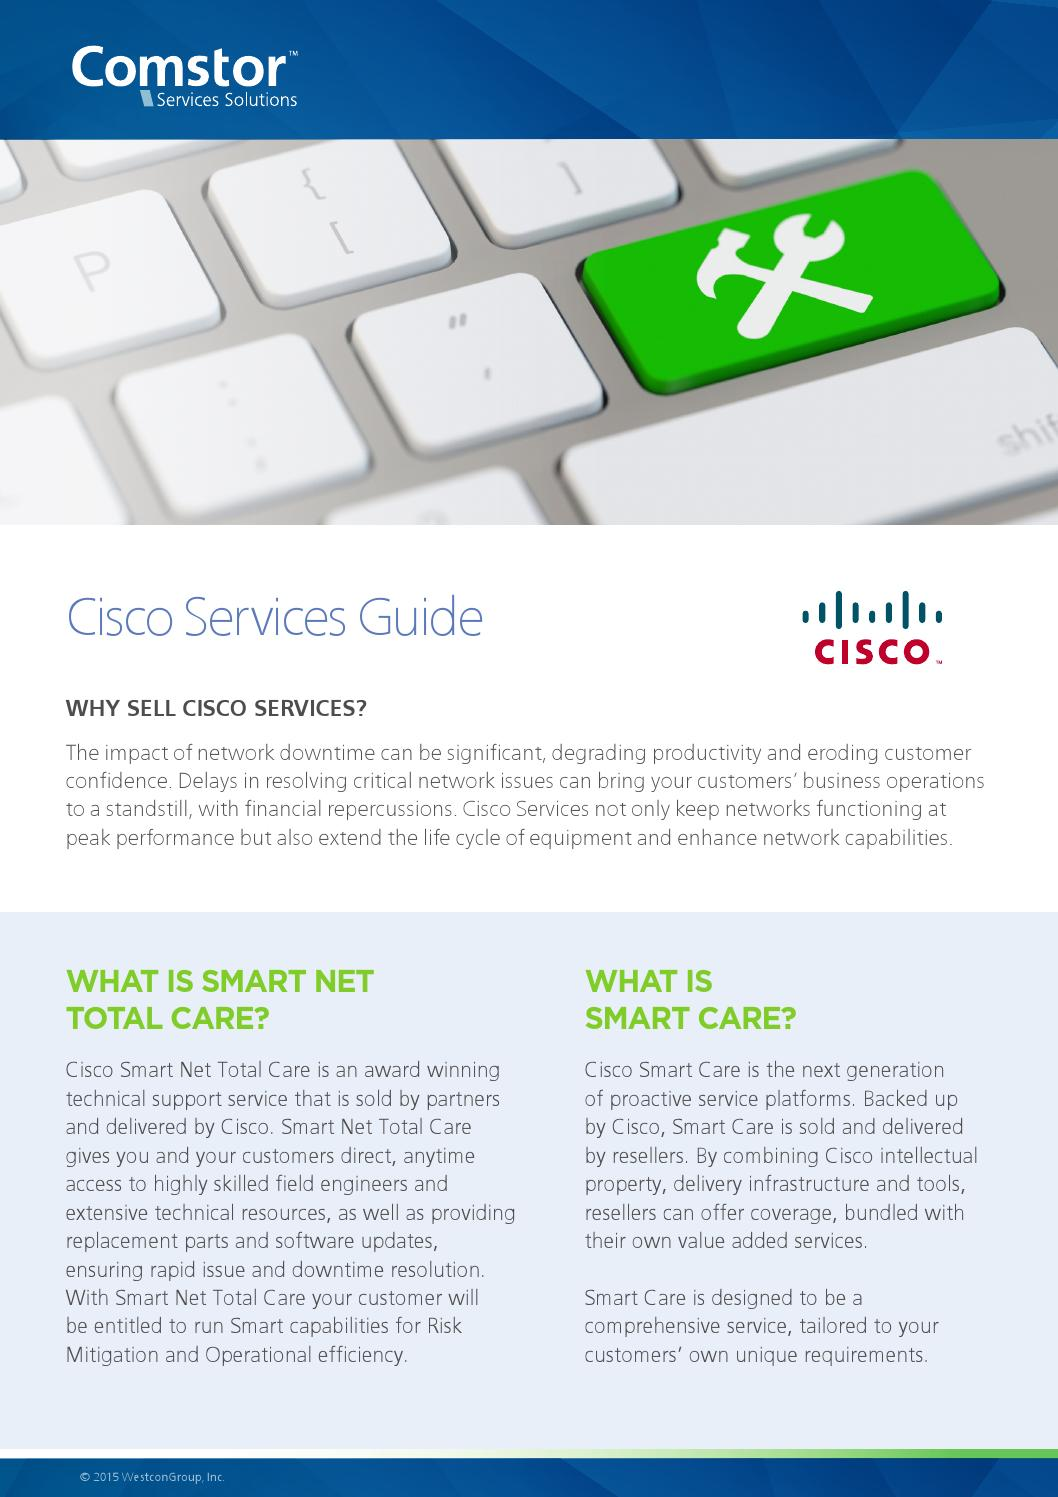 Comstor Cisco Services Guide by Katharina Boelter - issuu